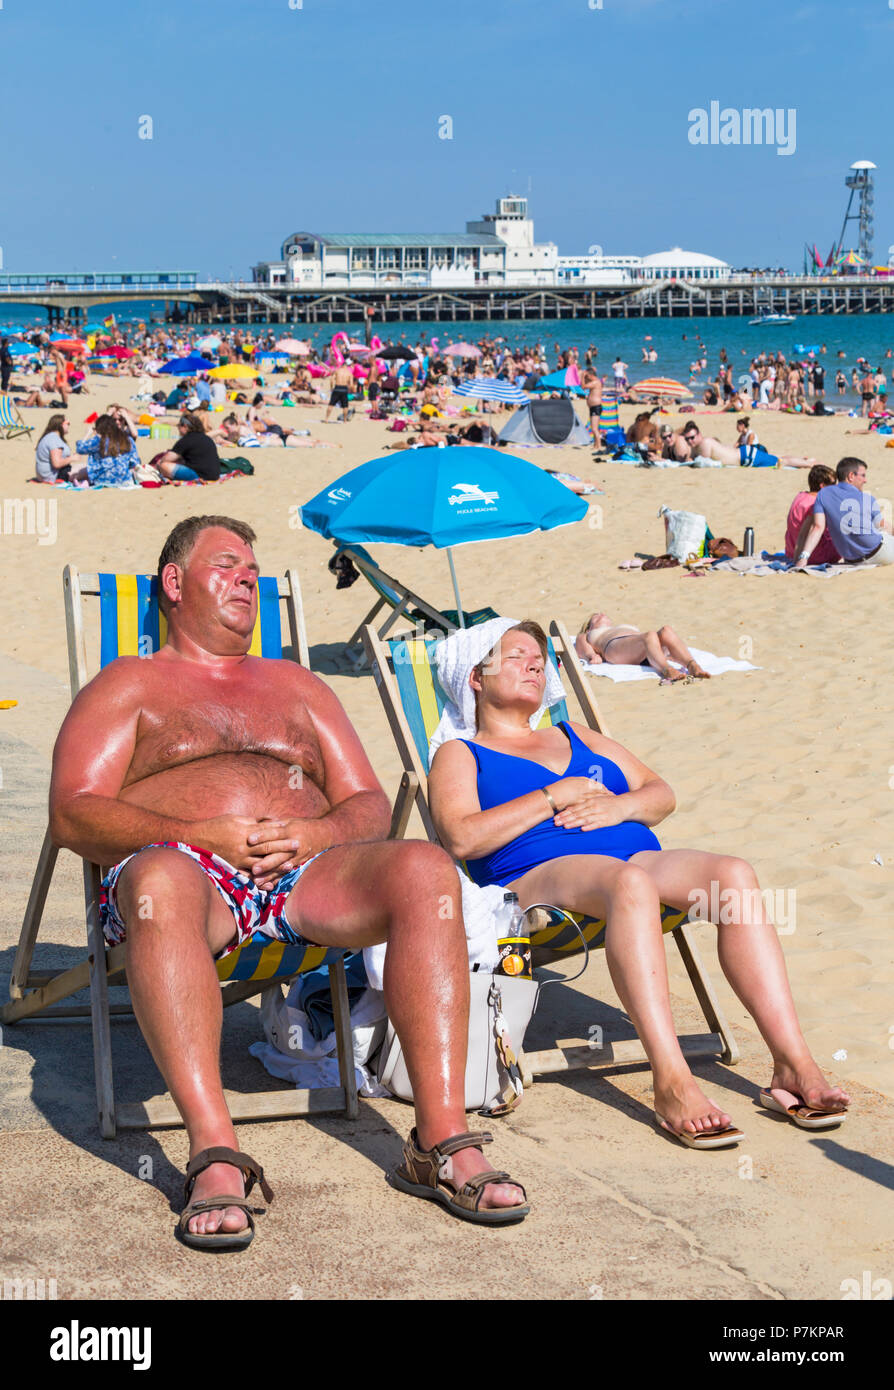 Bournemouth, Dorset, UK. 7th July 2018. UK weather: another hot sunny day as the heatwave continues and thousands of sunseekers head to the  seaside to enjoy the sandy beaches at Bournemouth even with the big match on! Credit: Carolyn Jenkins/Alamy Live News Credit: Carolyn Jenkins/Alamy Live News Credit: Carolyn Jenkins/Alamy Live News - Stock Image